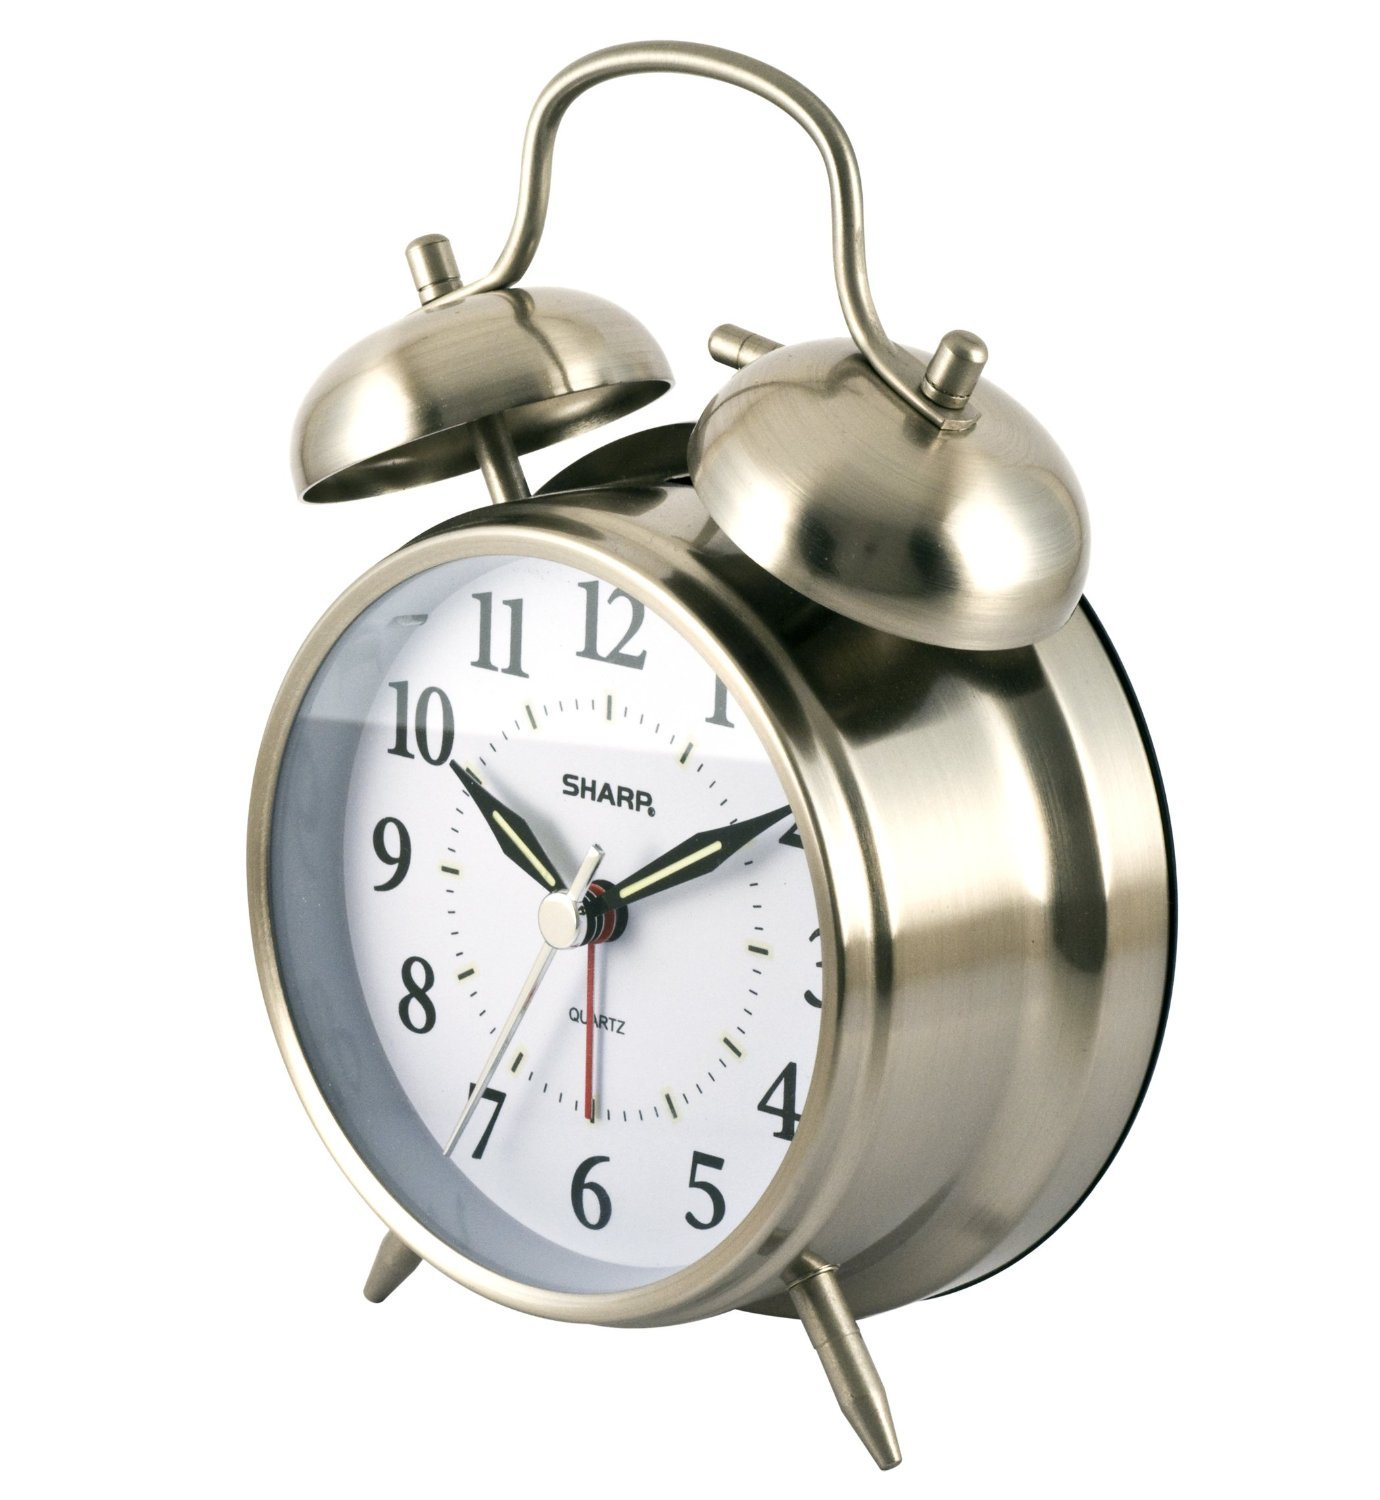 Sharp Quartz Analog Twin Bell Alarm Clock  - $44.58